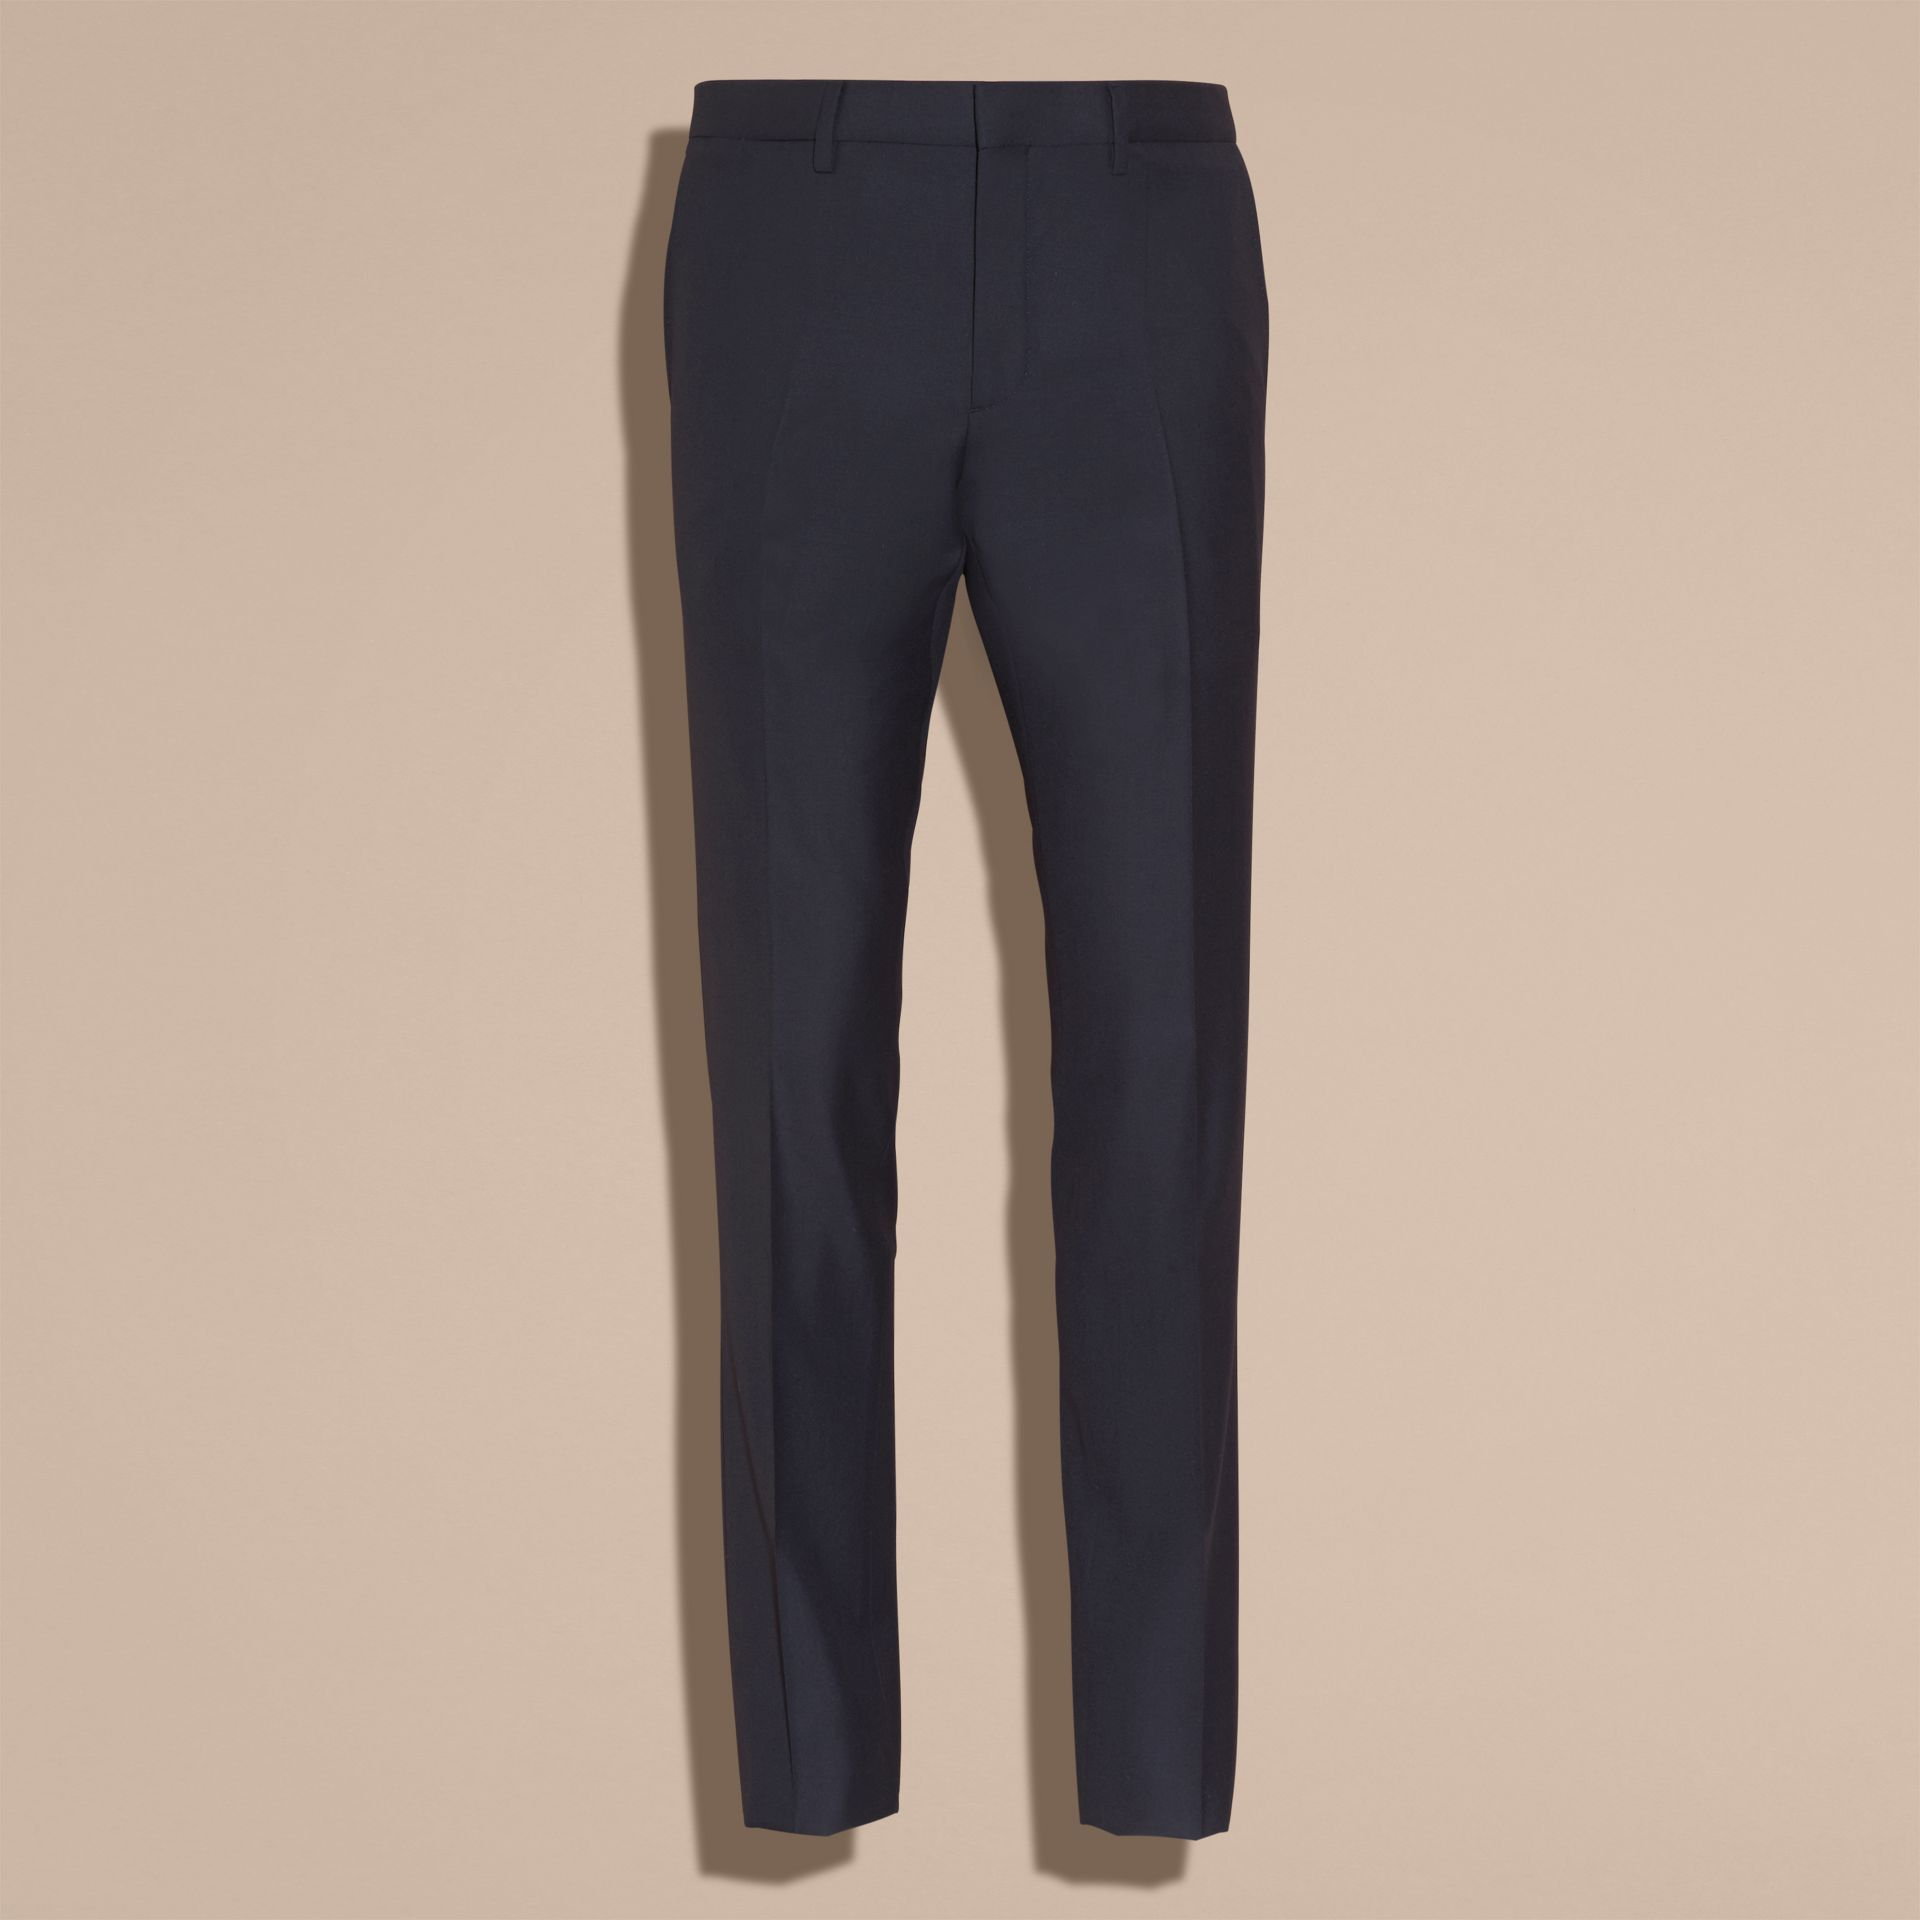 Navy Slim Fit Wool Trousers Navy - gallery image 4